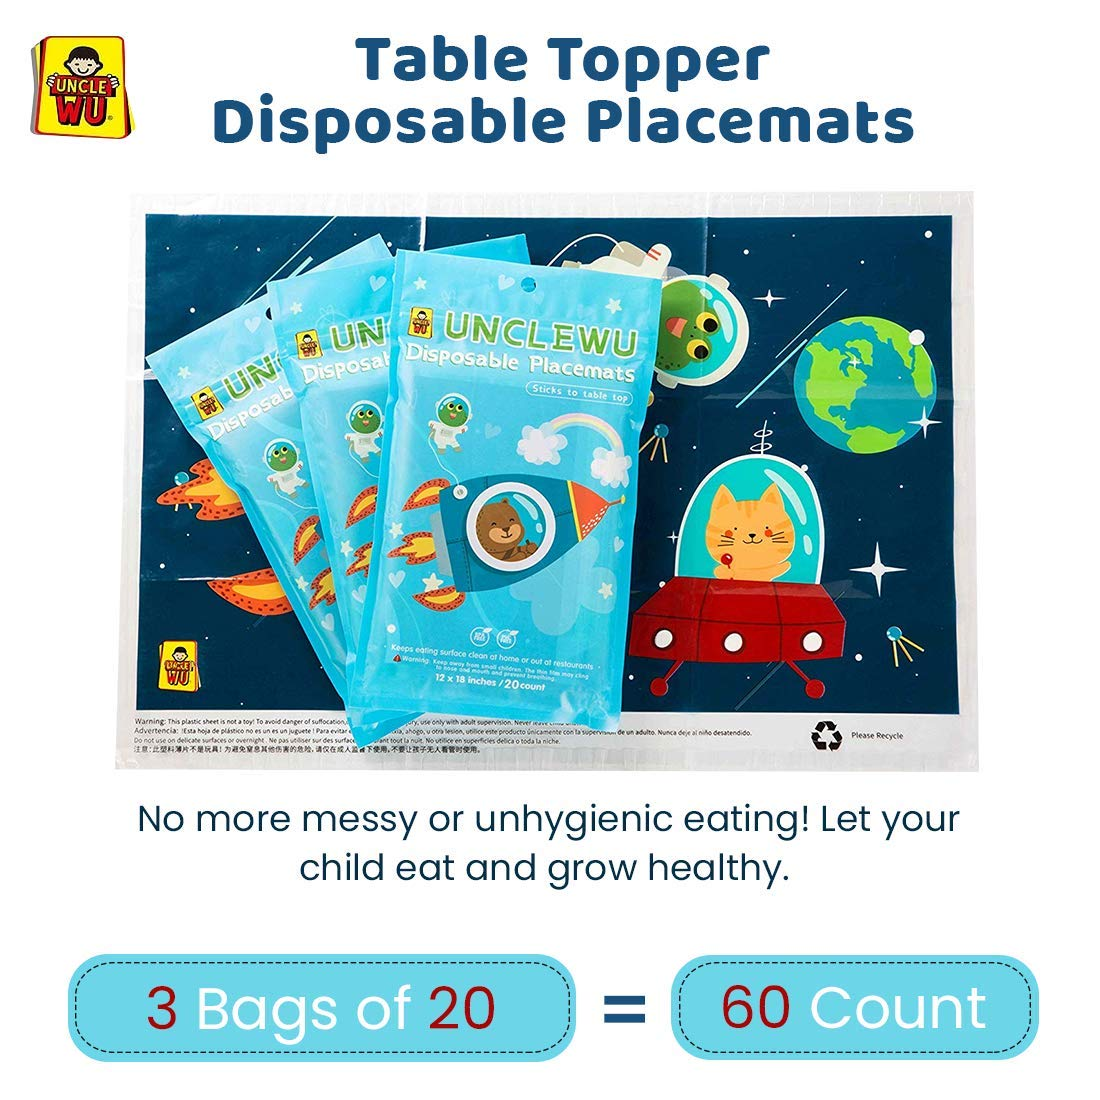 Table Topper Disposable Placemats UNCLE WU Baby Toddler Kids Super Sticky Disaposable Placemats12''x18'' 60 Count (3 Bags of 20) BPA Free -ECO Friendly,NEET &Safe Restaurants,No Cleaning by UNCLE WU